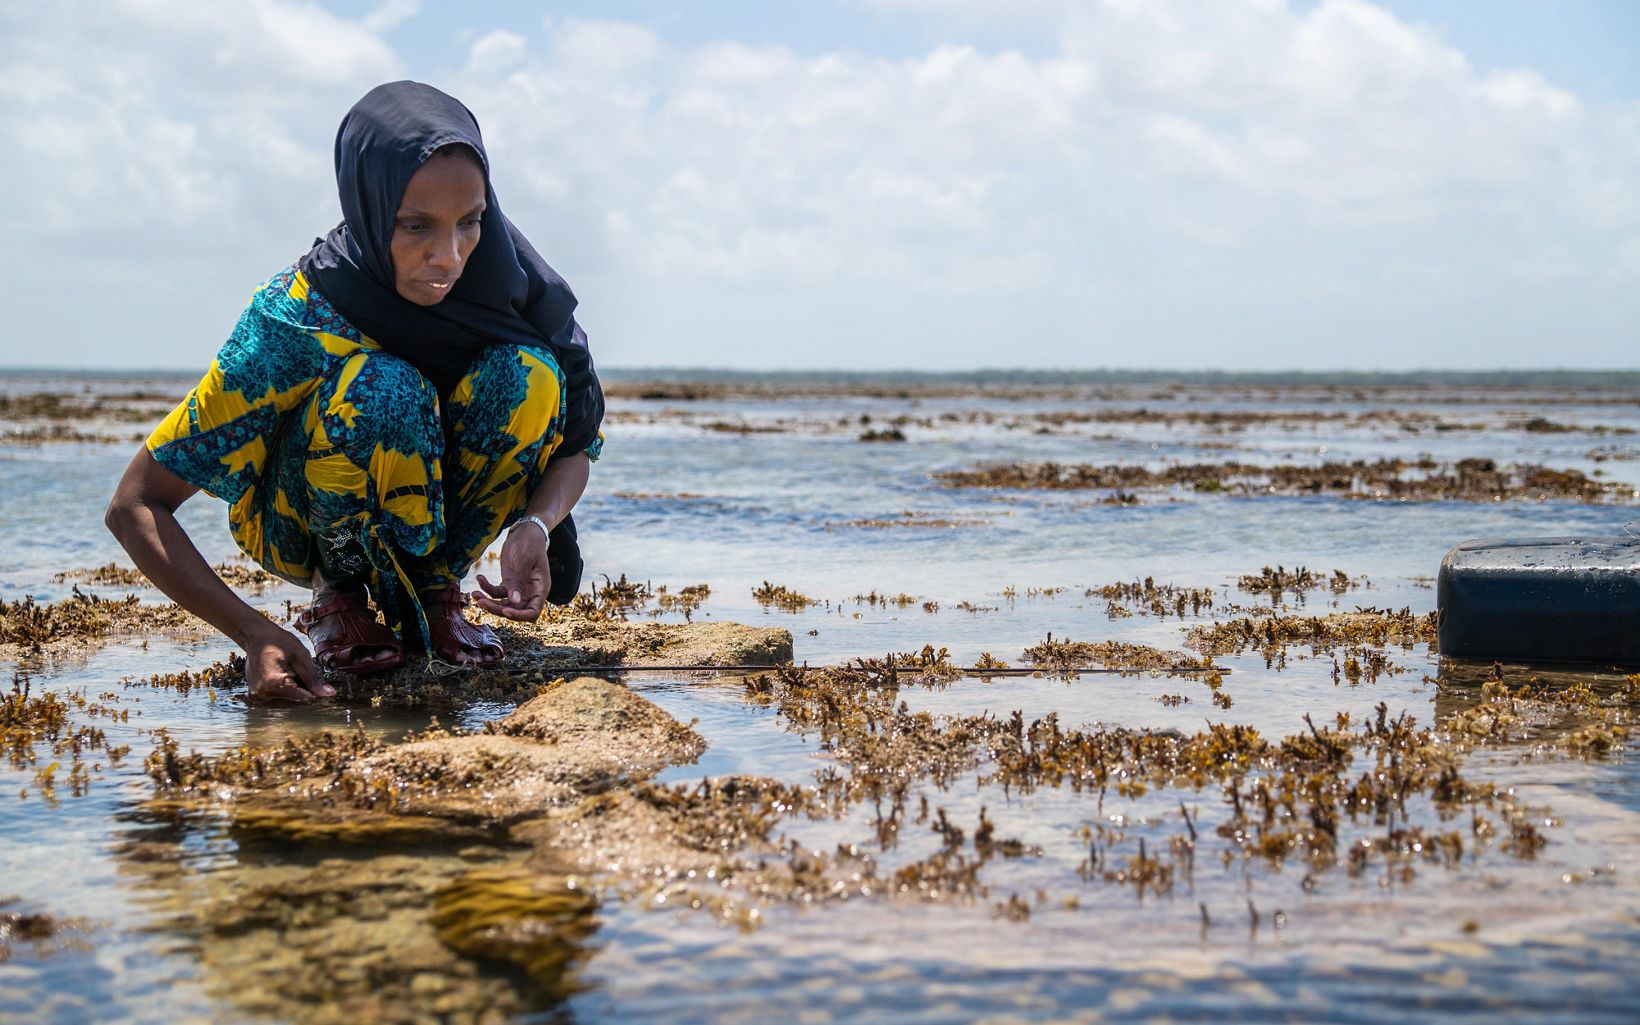 Amina Ahmed fishes for octopuses after the no-take zone is re-opened in Lamu, Kenya.